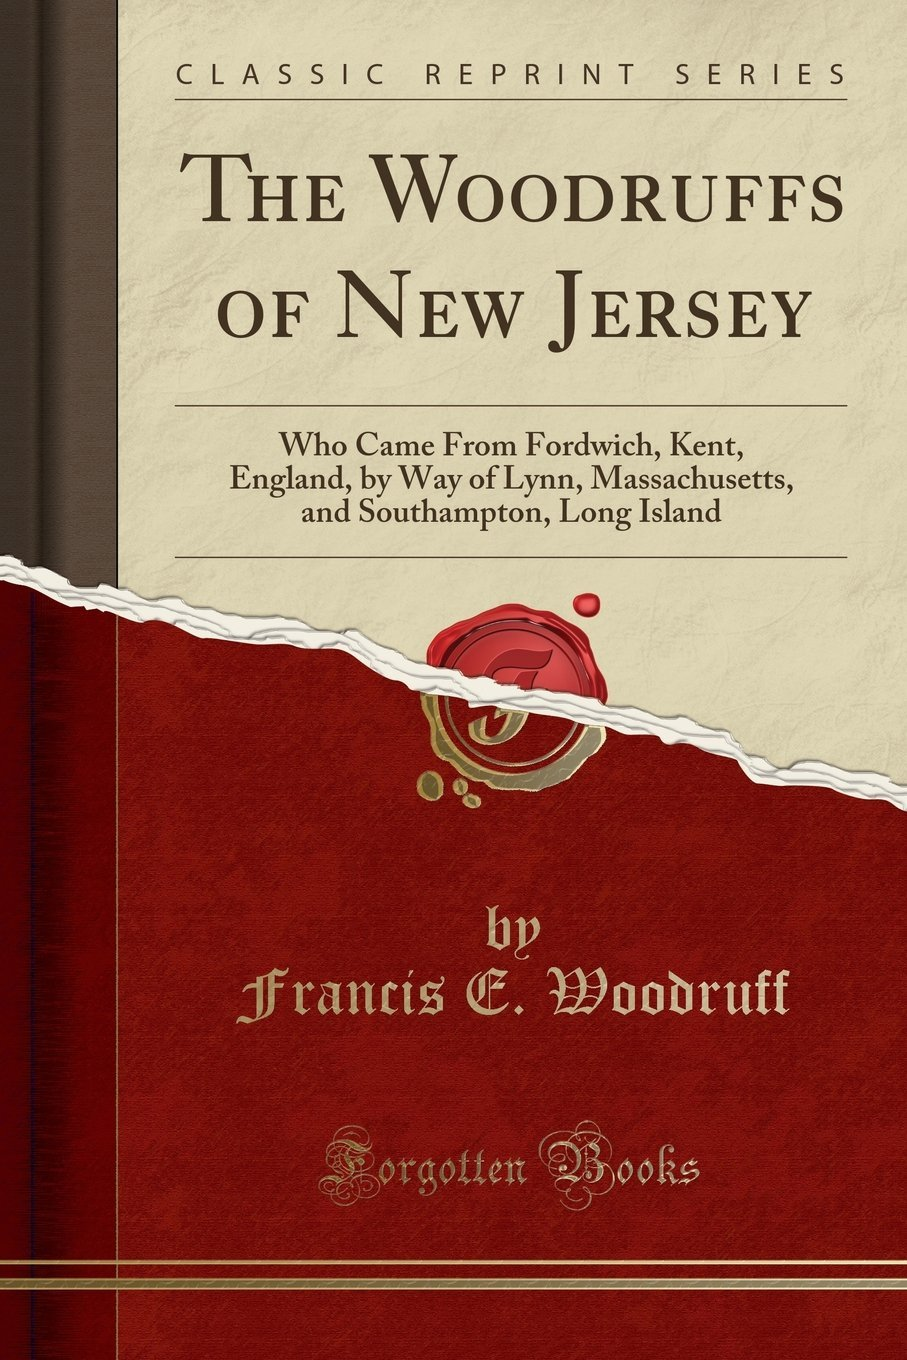 Download The Woodruffs of New Jersey: Who Came From Fordwich, Kent, England, by Way of Lynn, Massachusetts, and Southampton, Long Island (Classic Reprint) pdf